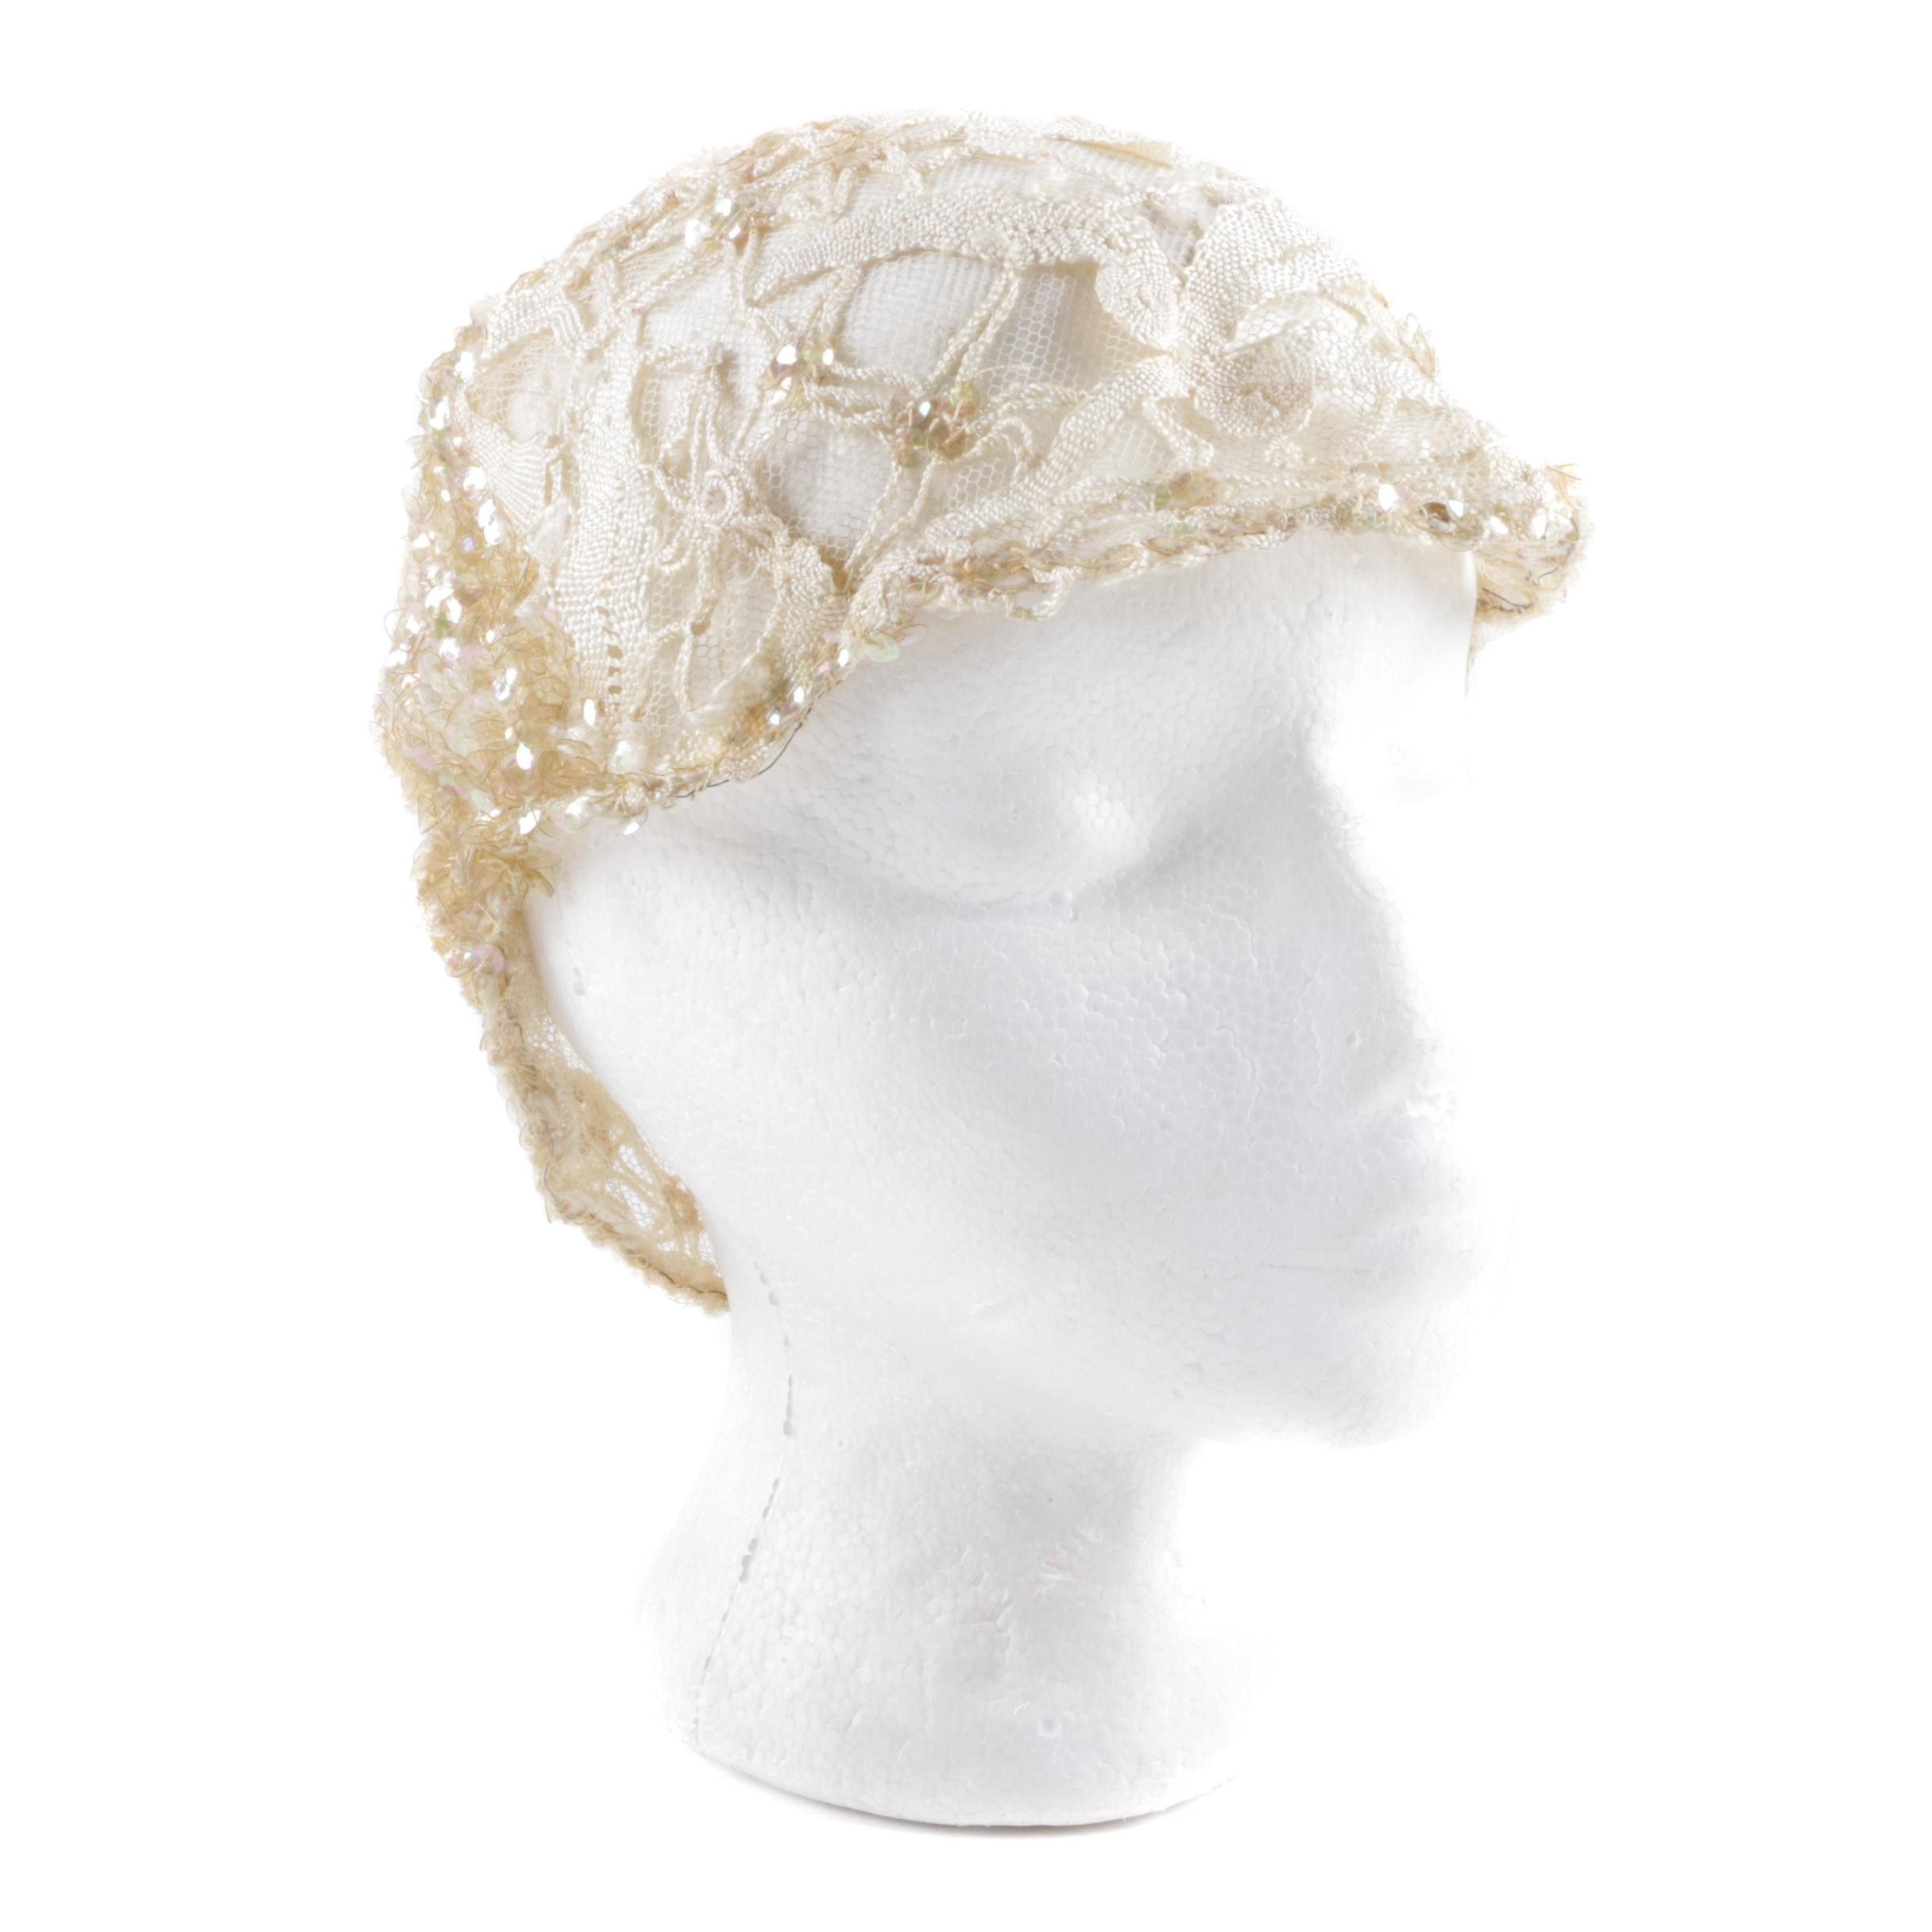 Vintage Mesh, Crochet Lace and Sequined Headcap